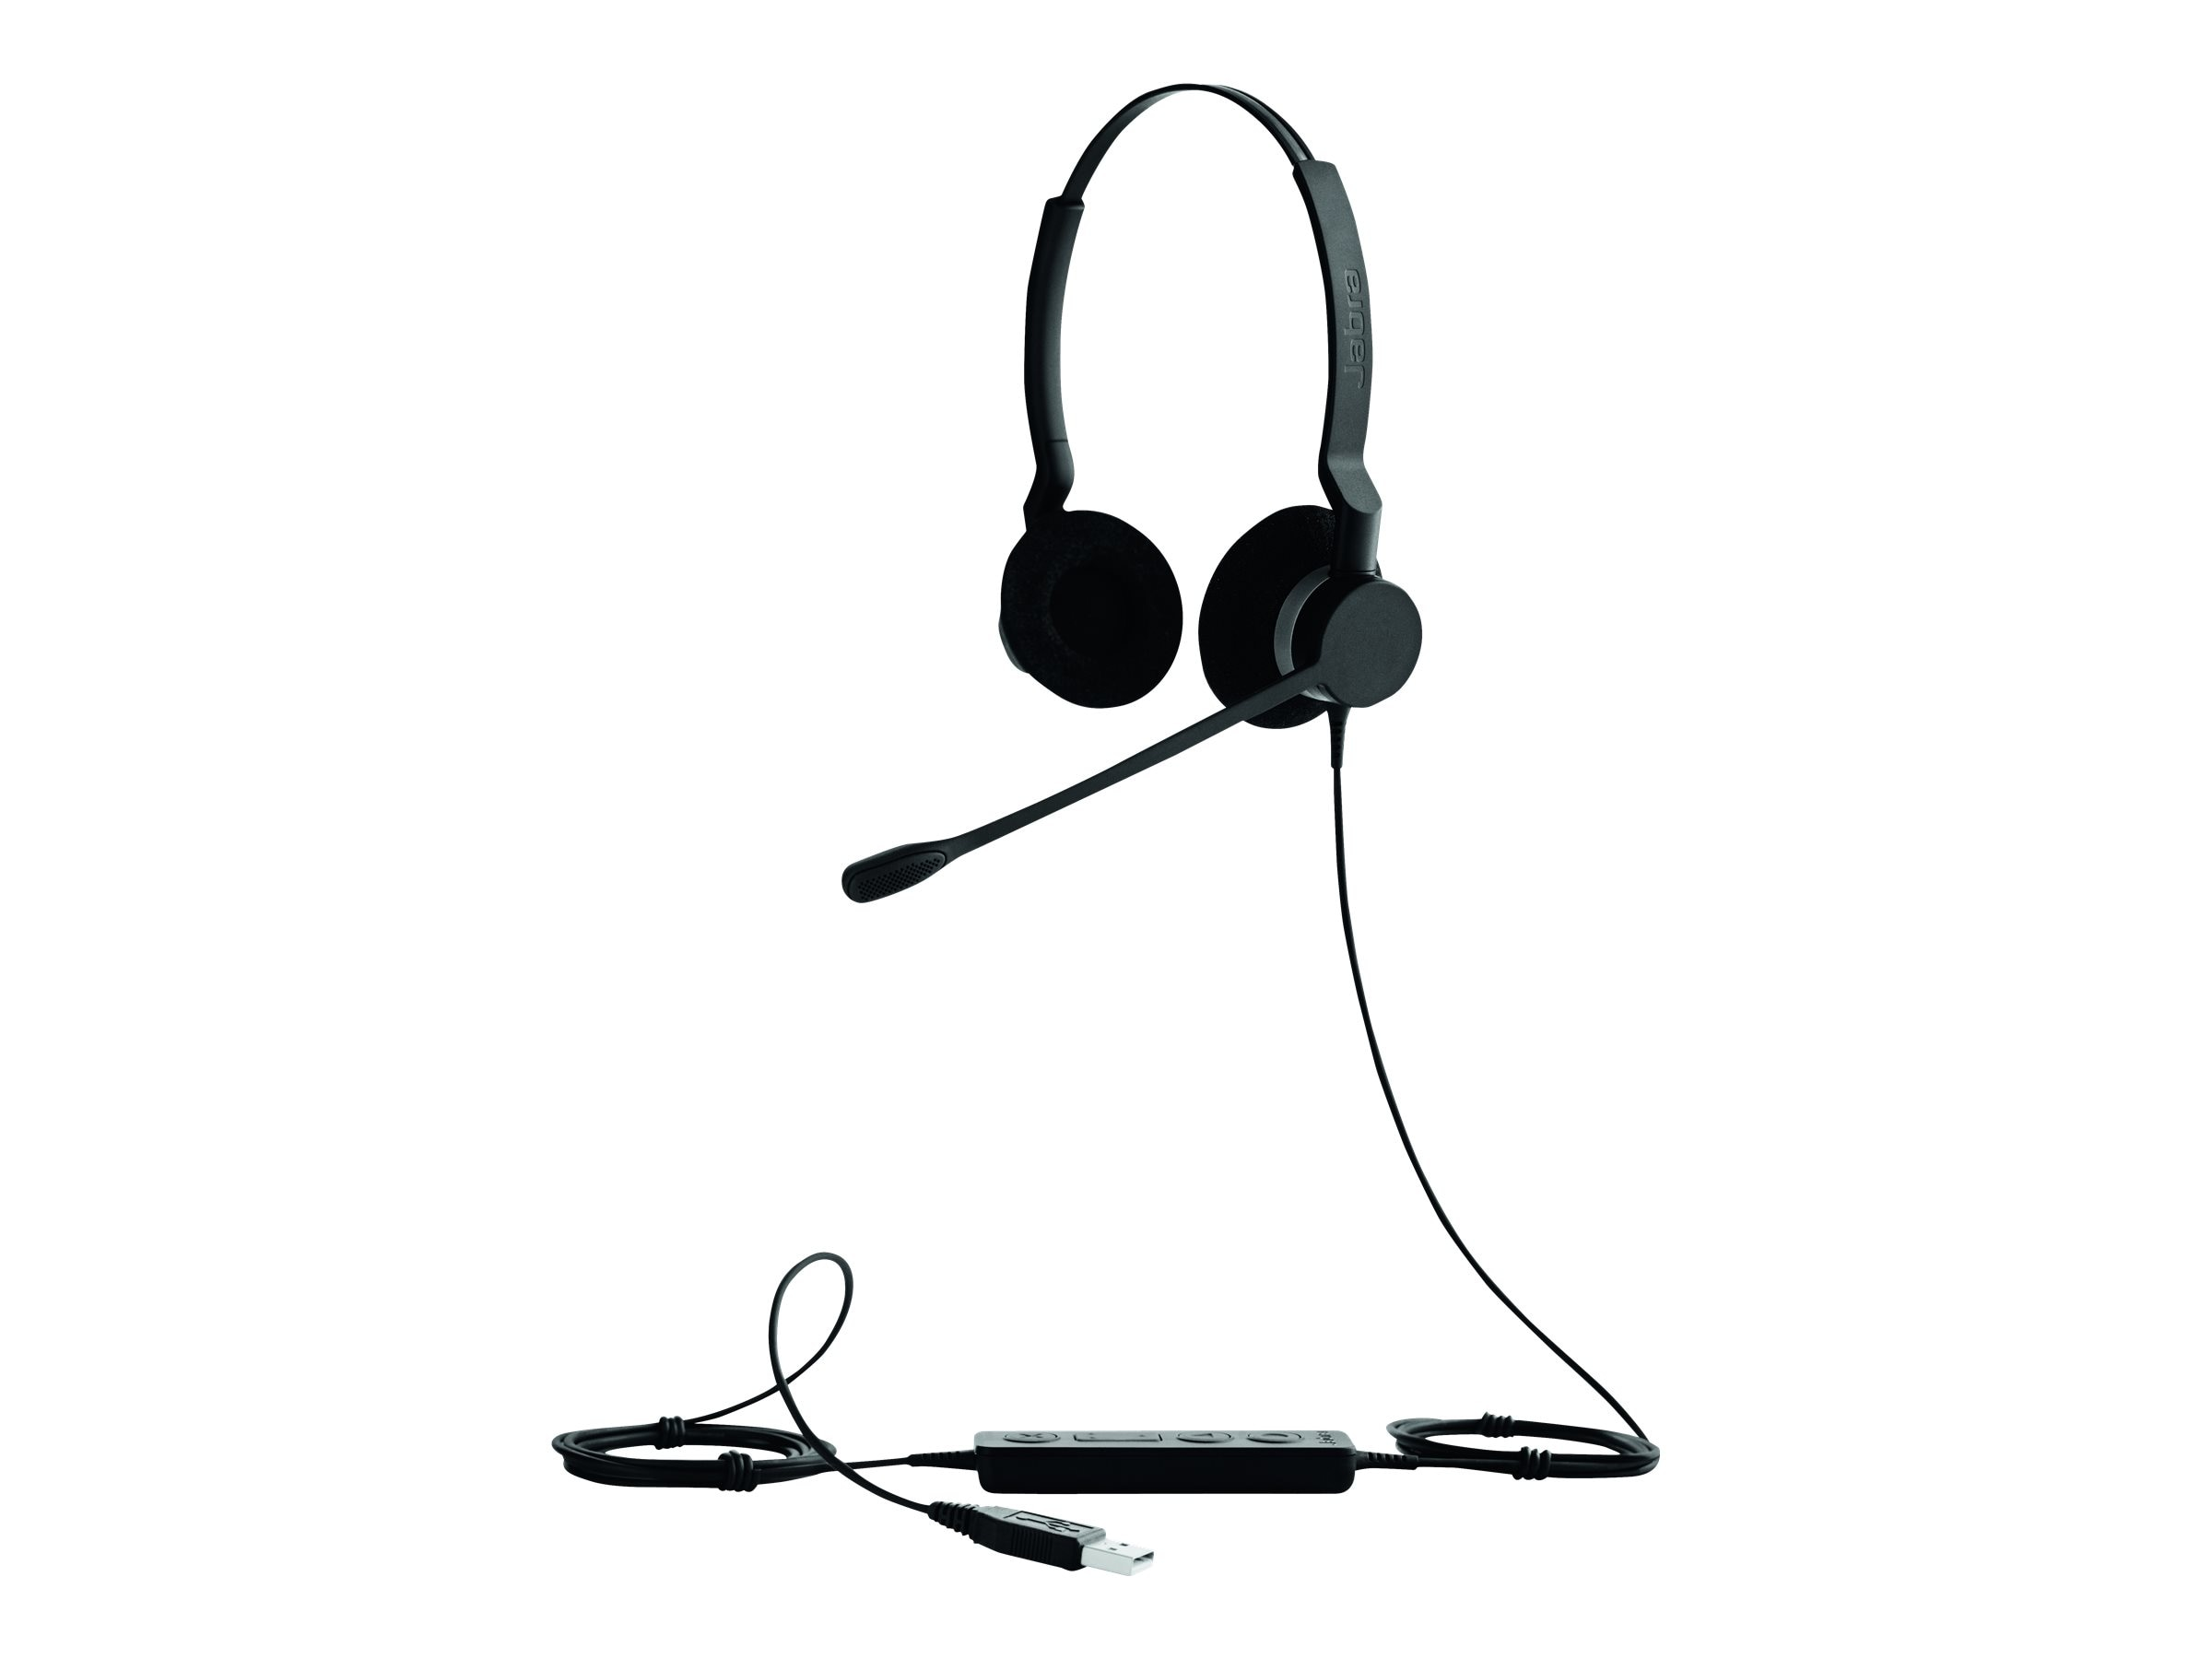 jabra biz 2300 qd duo headset hsbc only 2309 820 119 Office with Headset Cake jabra biz 2300 qd duo headset hsbc only